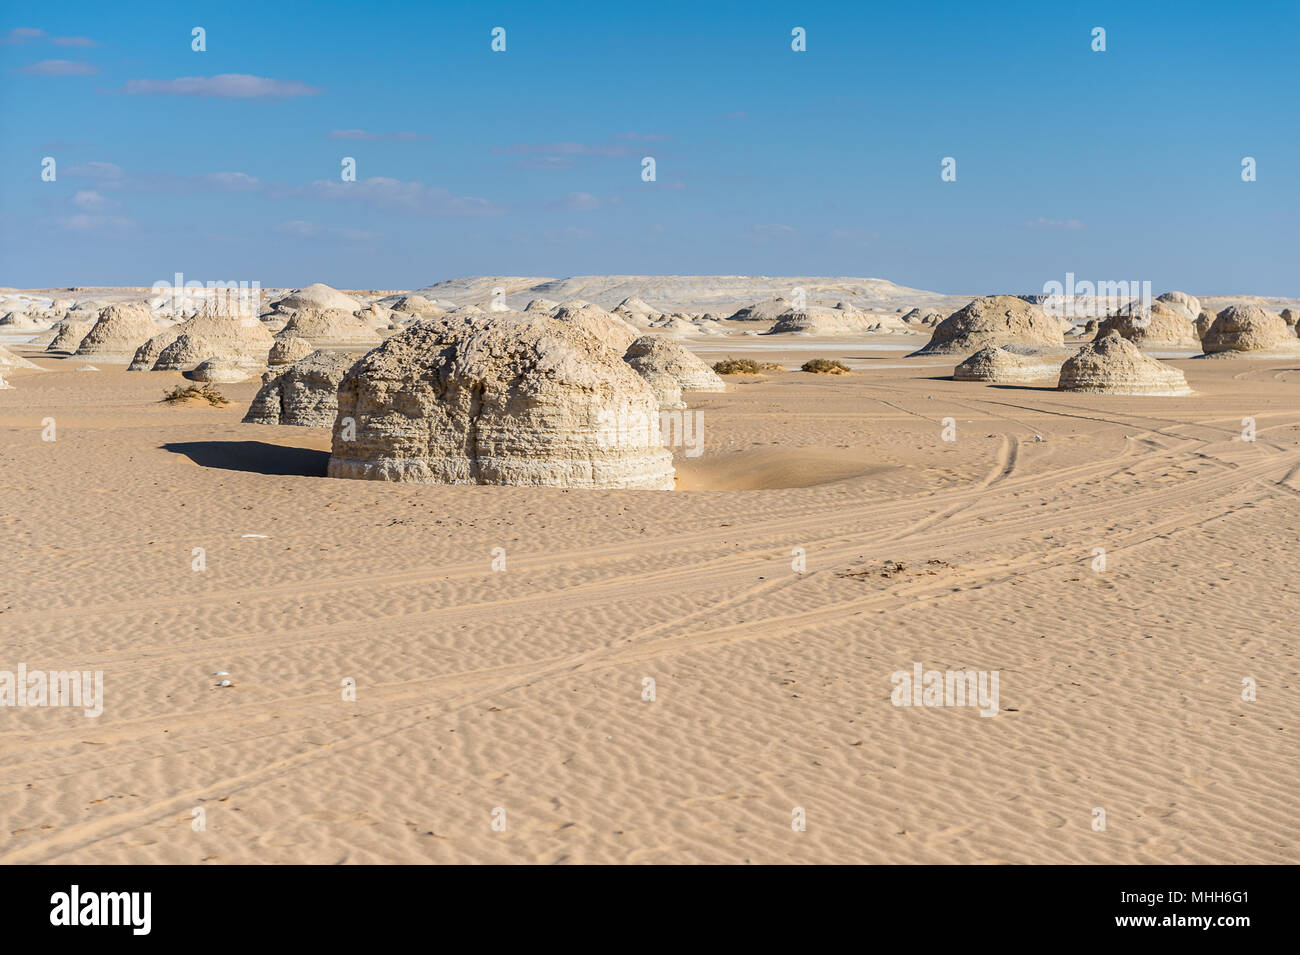 White desert formations at the white desert in Egypt - Stock Image